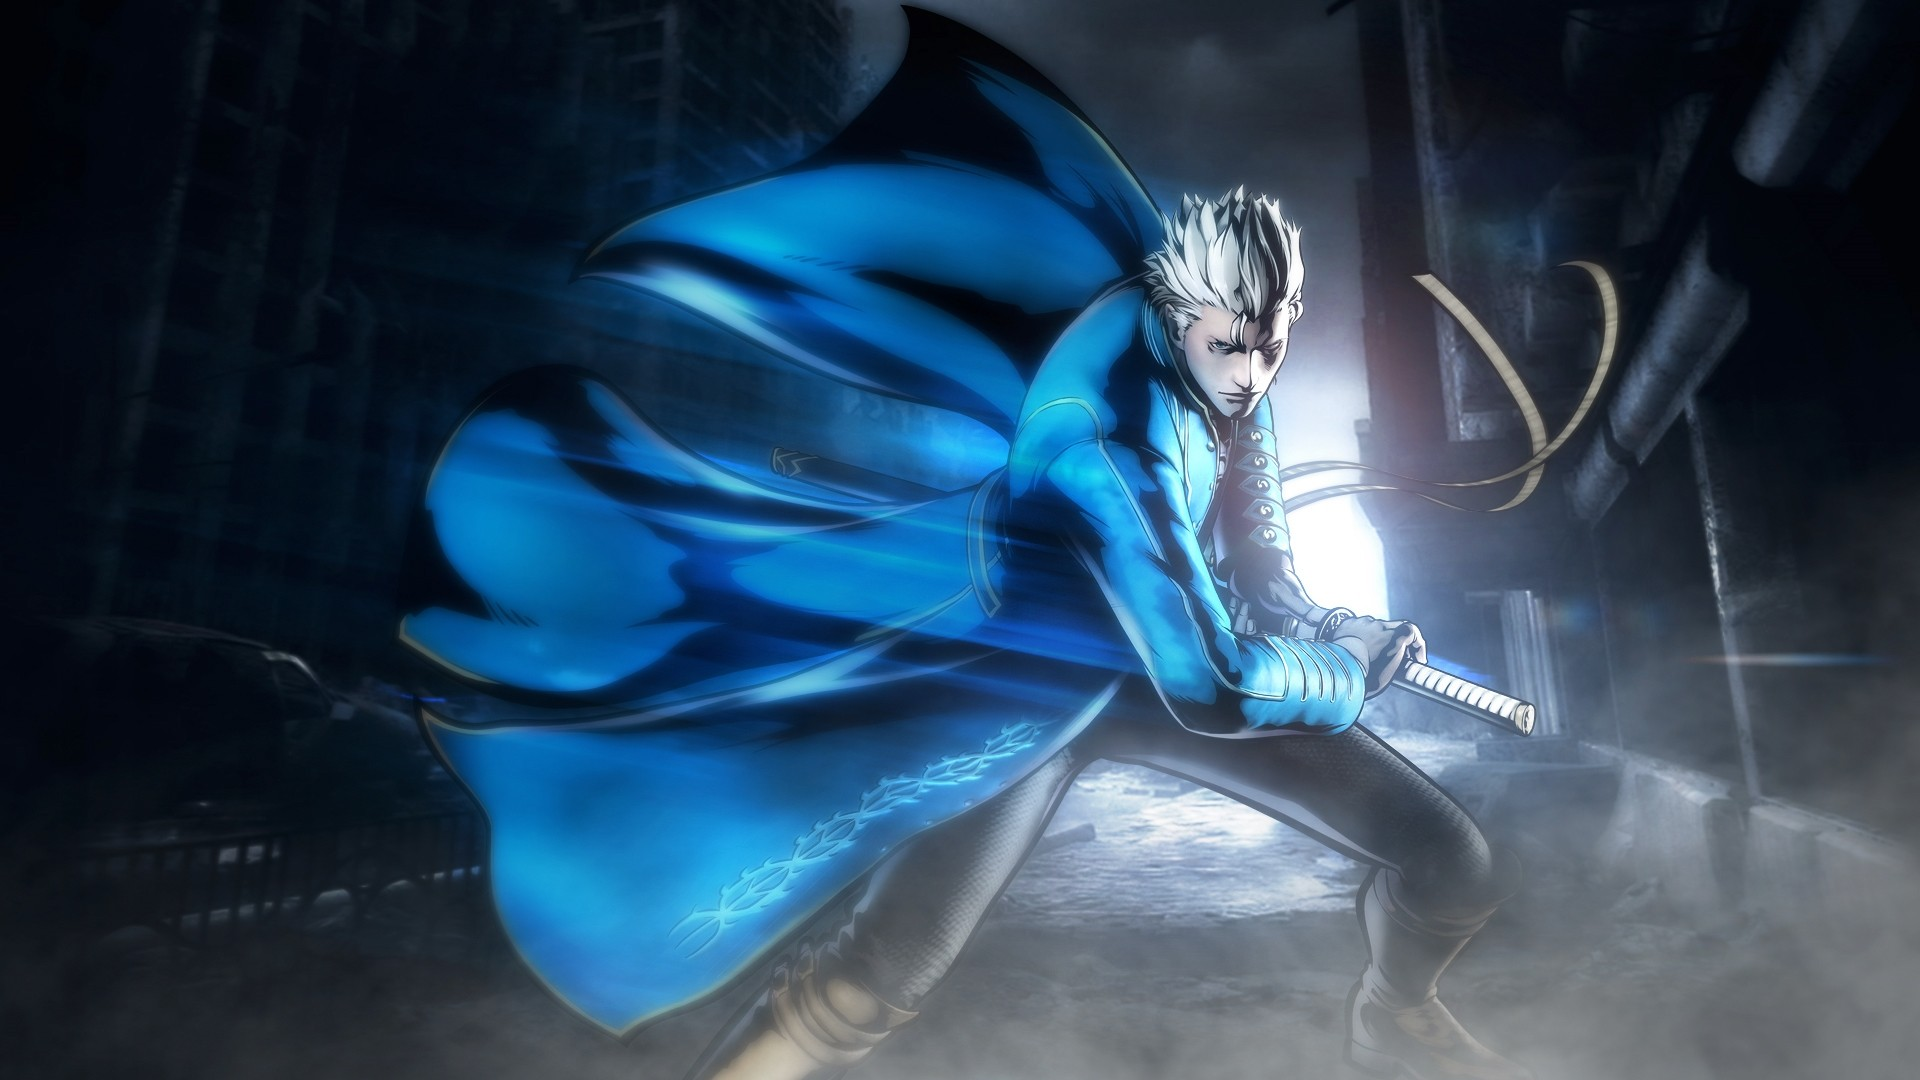 Devil May Cry hd wallpaper for pc